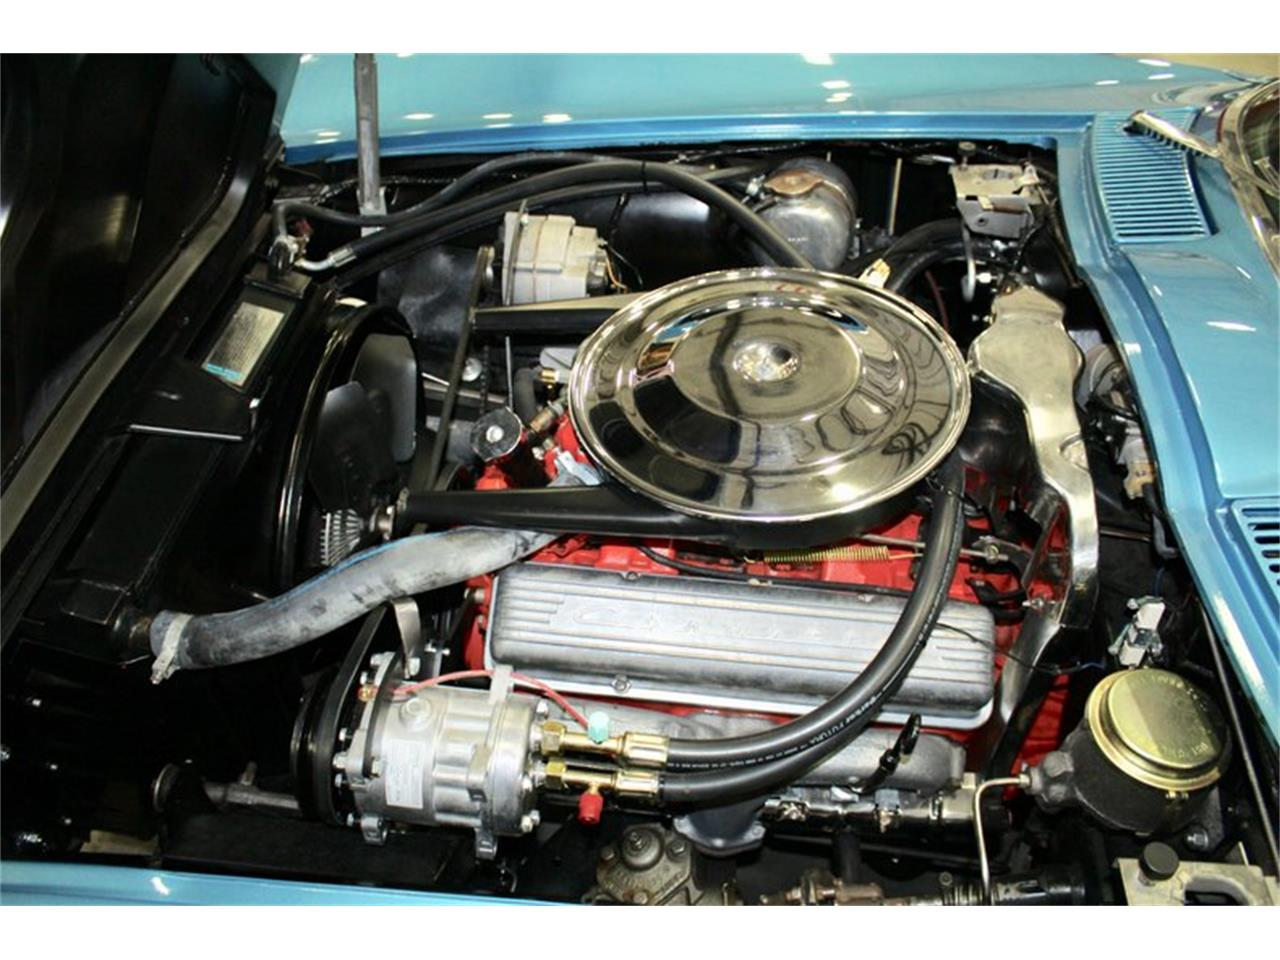 Large Picture of 1965 Corvette located in Florida - $69,500.00 Offered by Classic Cars of Sarasota - QSRR